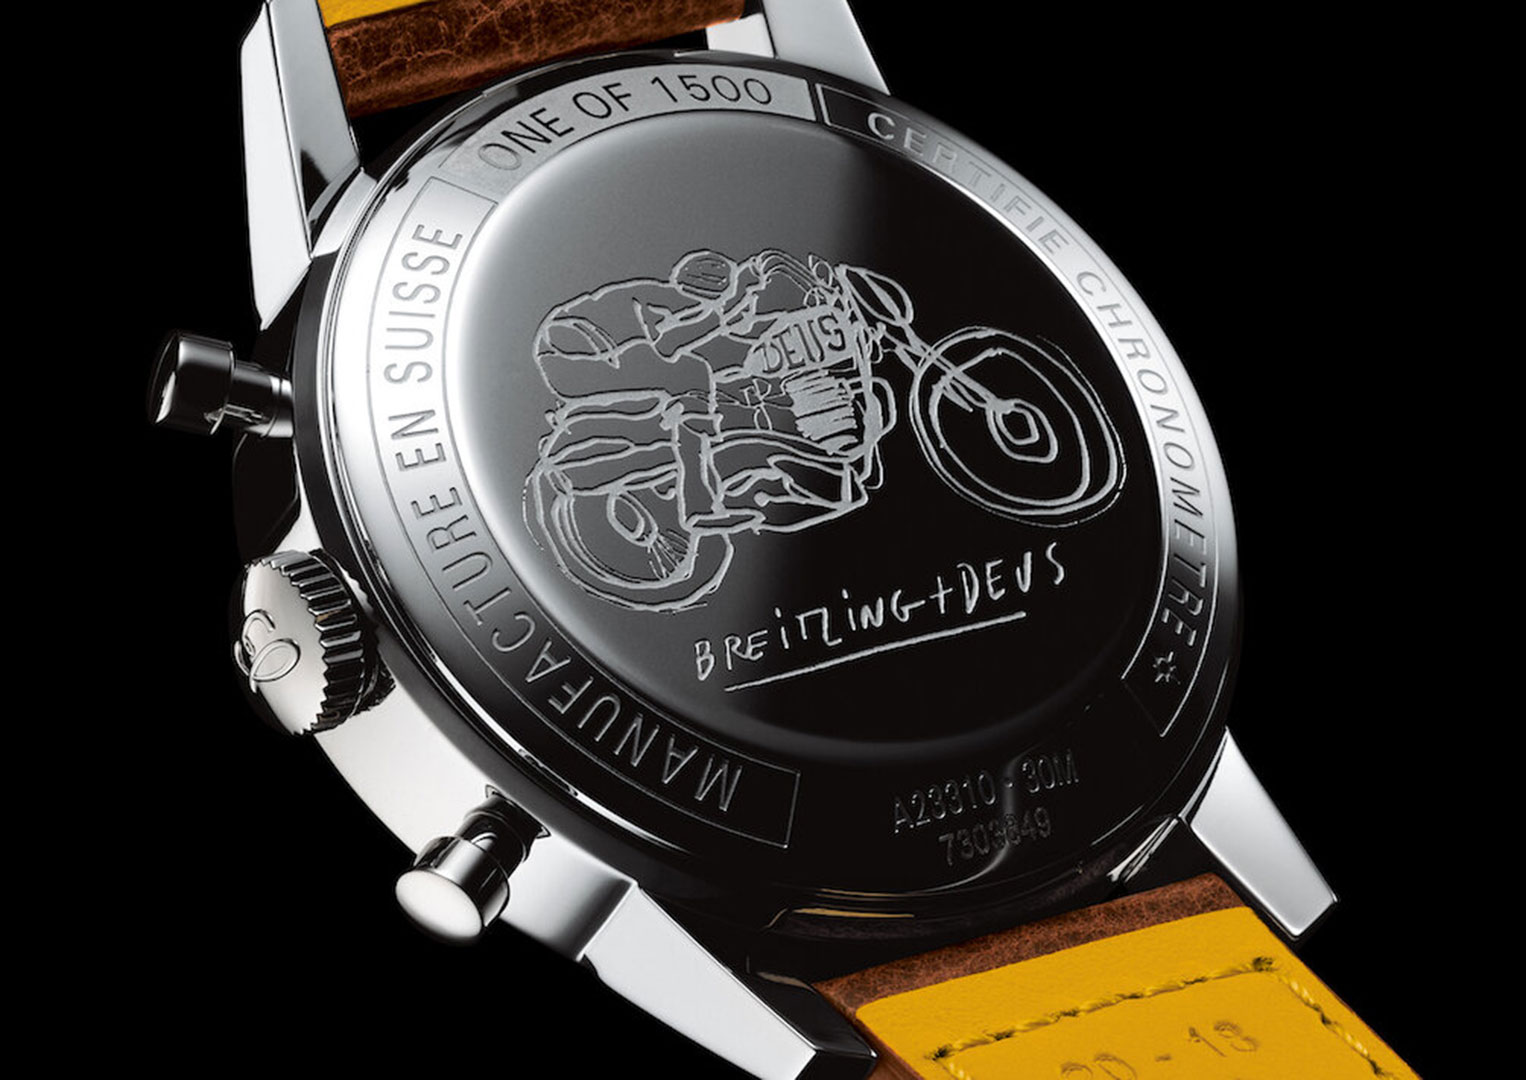 The Breitling Top Time Deus Chronograph costs £4,100)